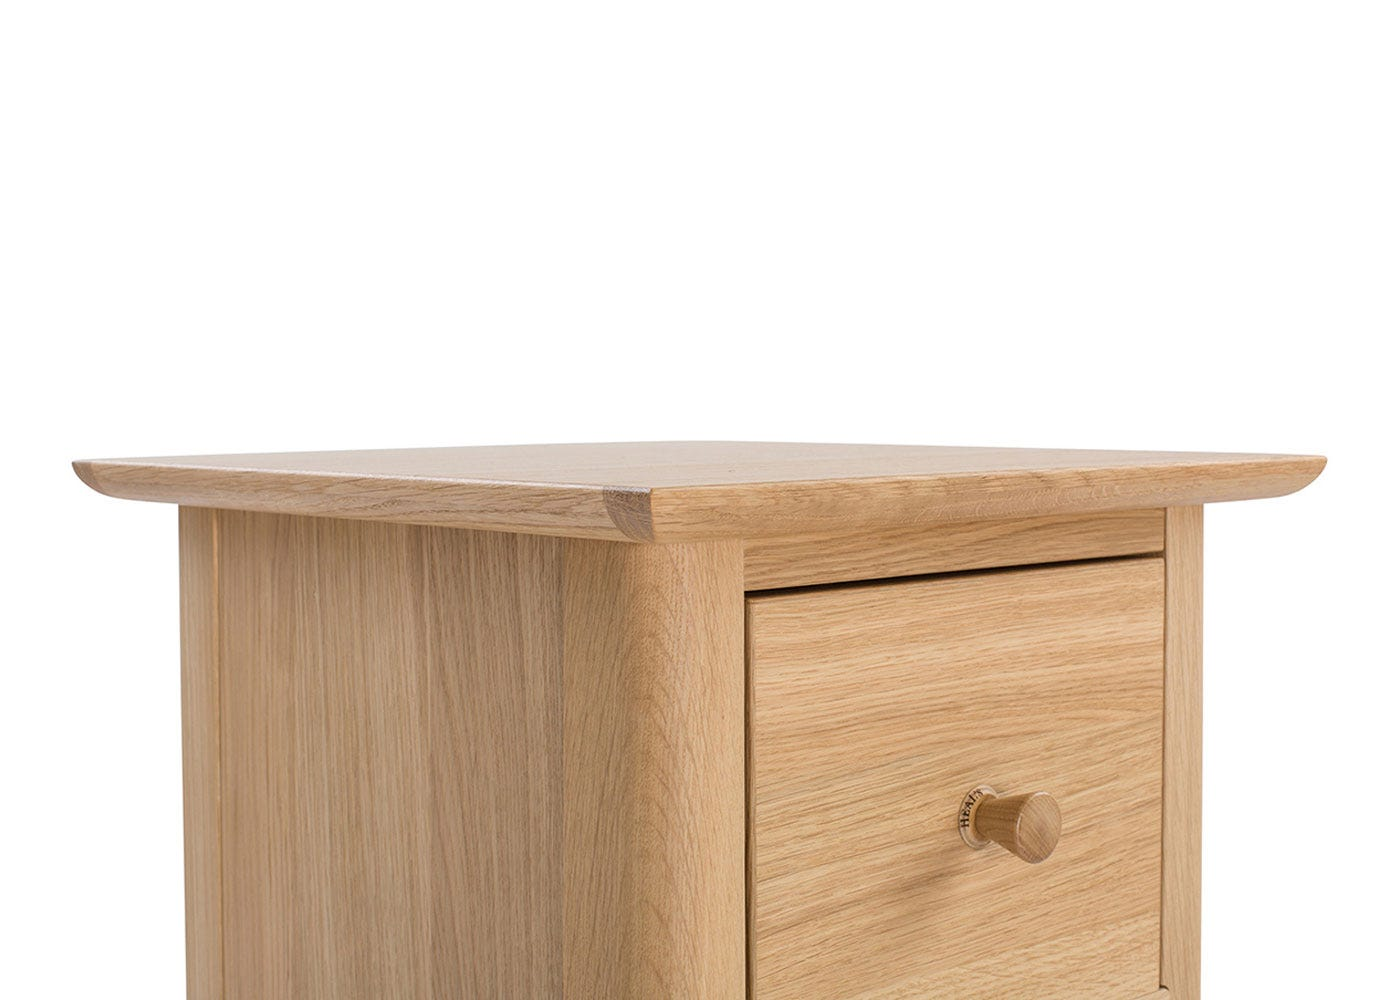 As shown: Blythe table top.